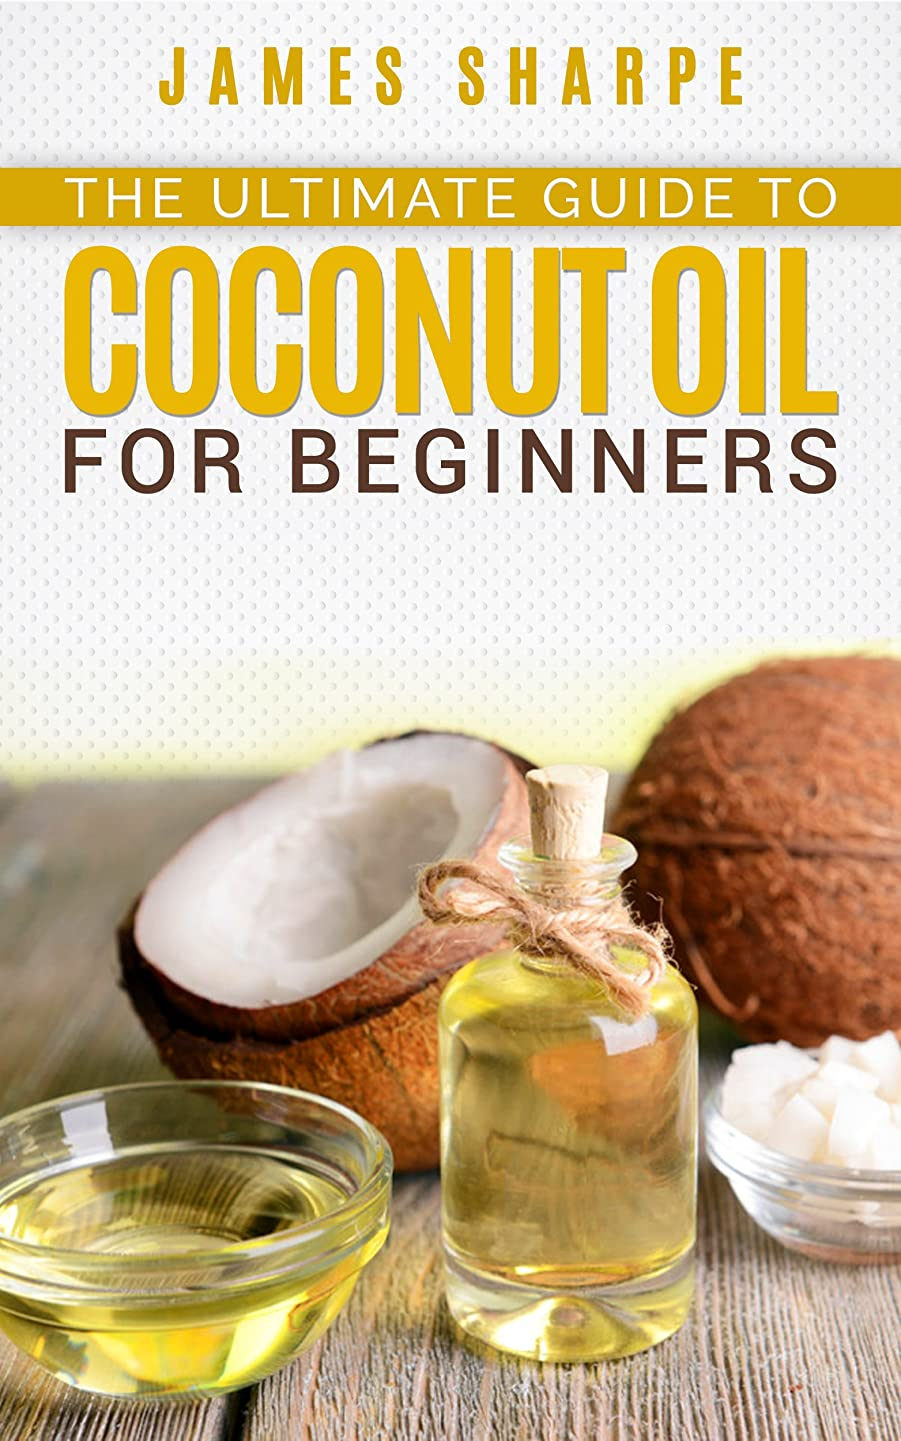 The Ultimate guide to Coconut Oil for beginners (Health and Wellness Book 1) (English Edition)